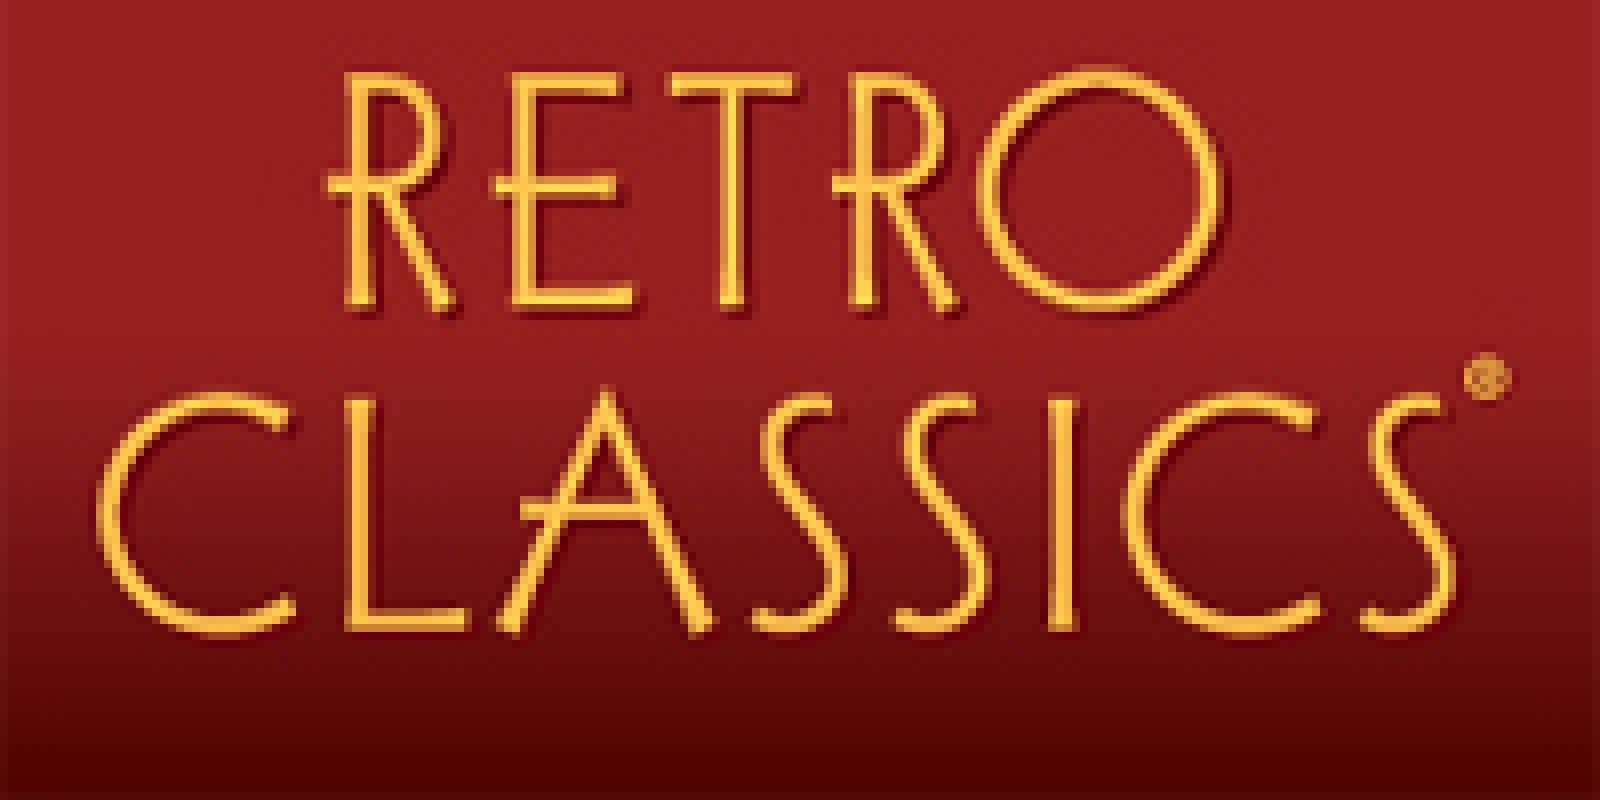 Retro Classic Stuttgart 22 - 25 march 2018